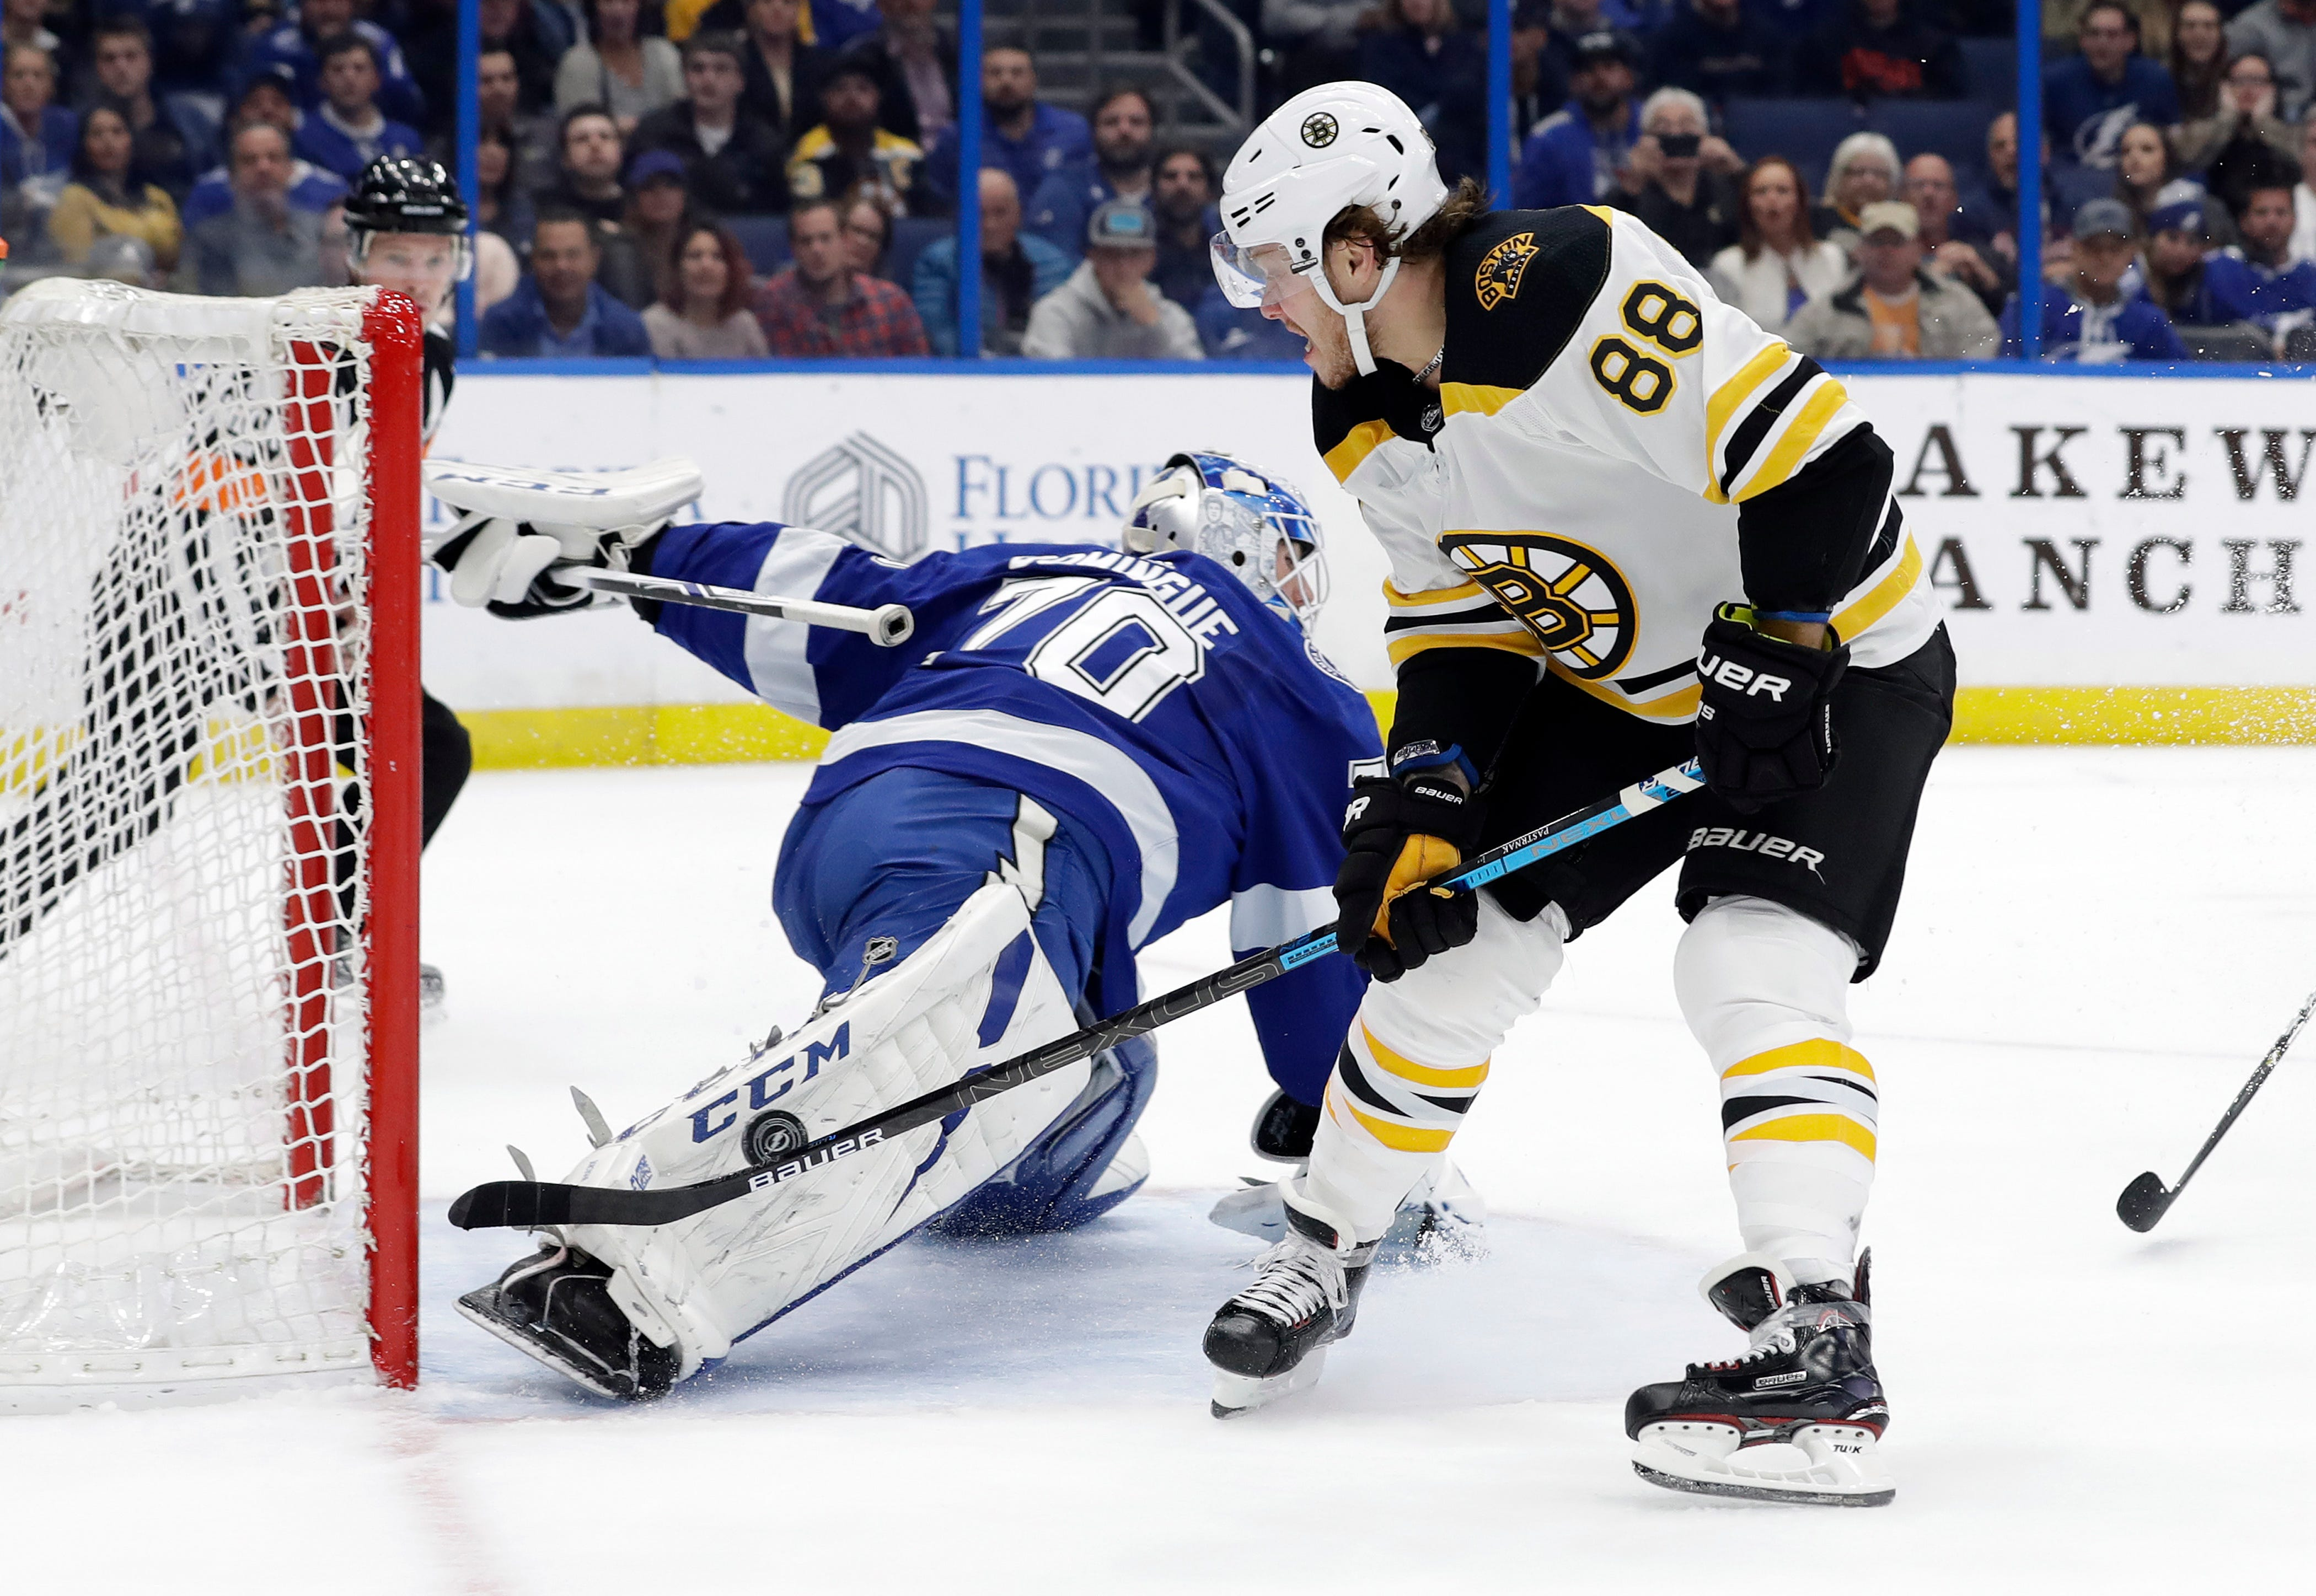 Lightning beat Bruins 3-2 for 5th consecutive win